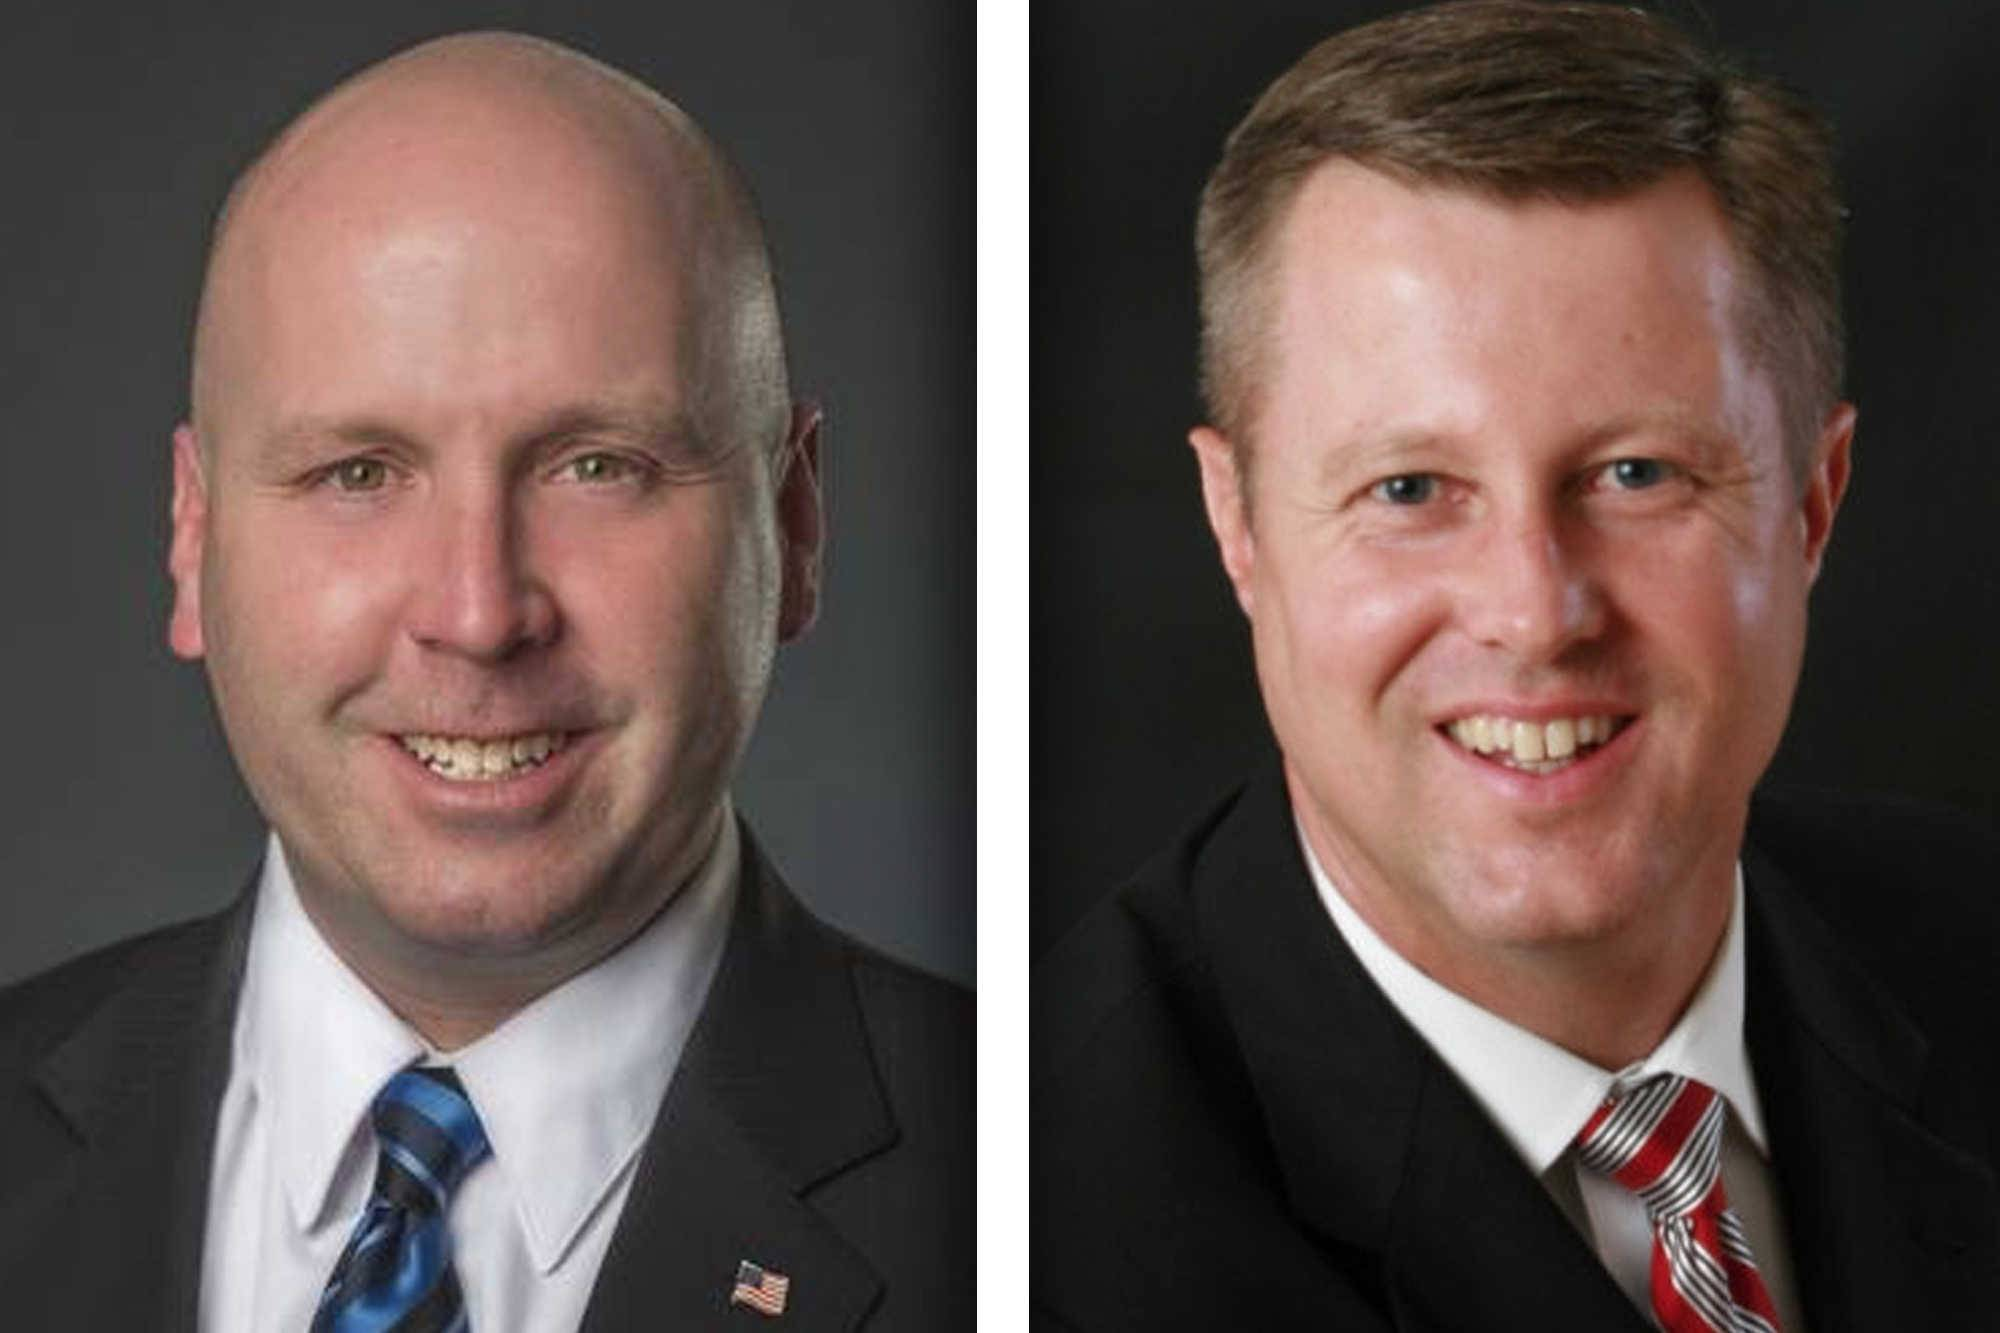 Democrat Thomas Cullerton, left, and Republican Seth Lewis are candidates for the 23rd District state Senate seat.